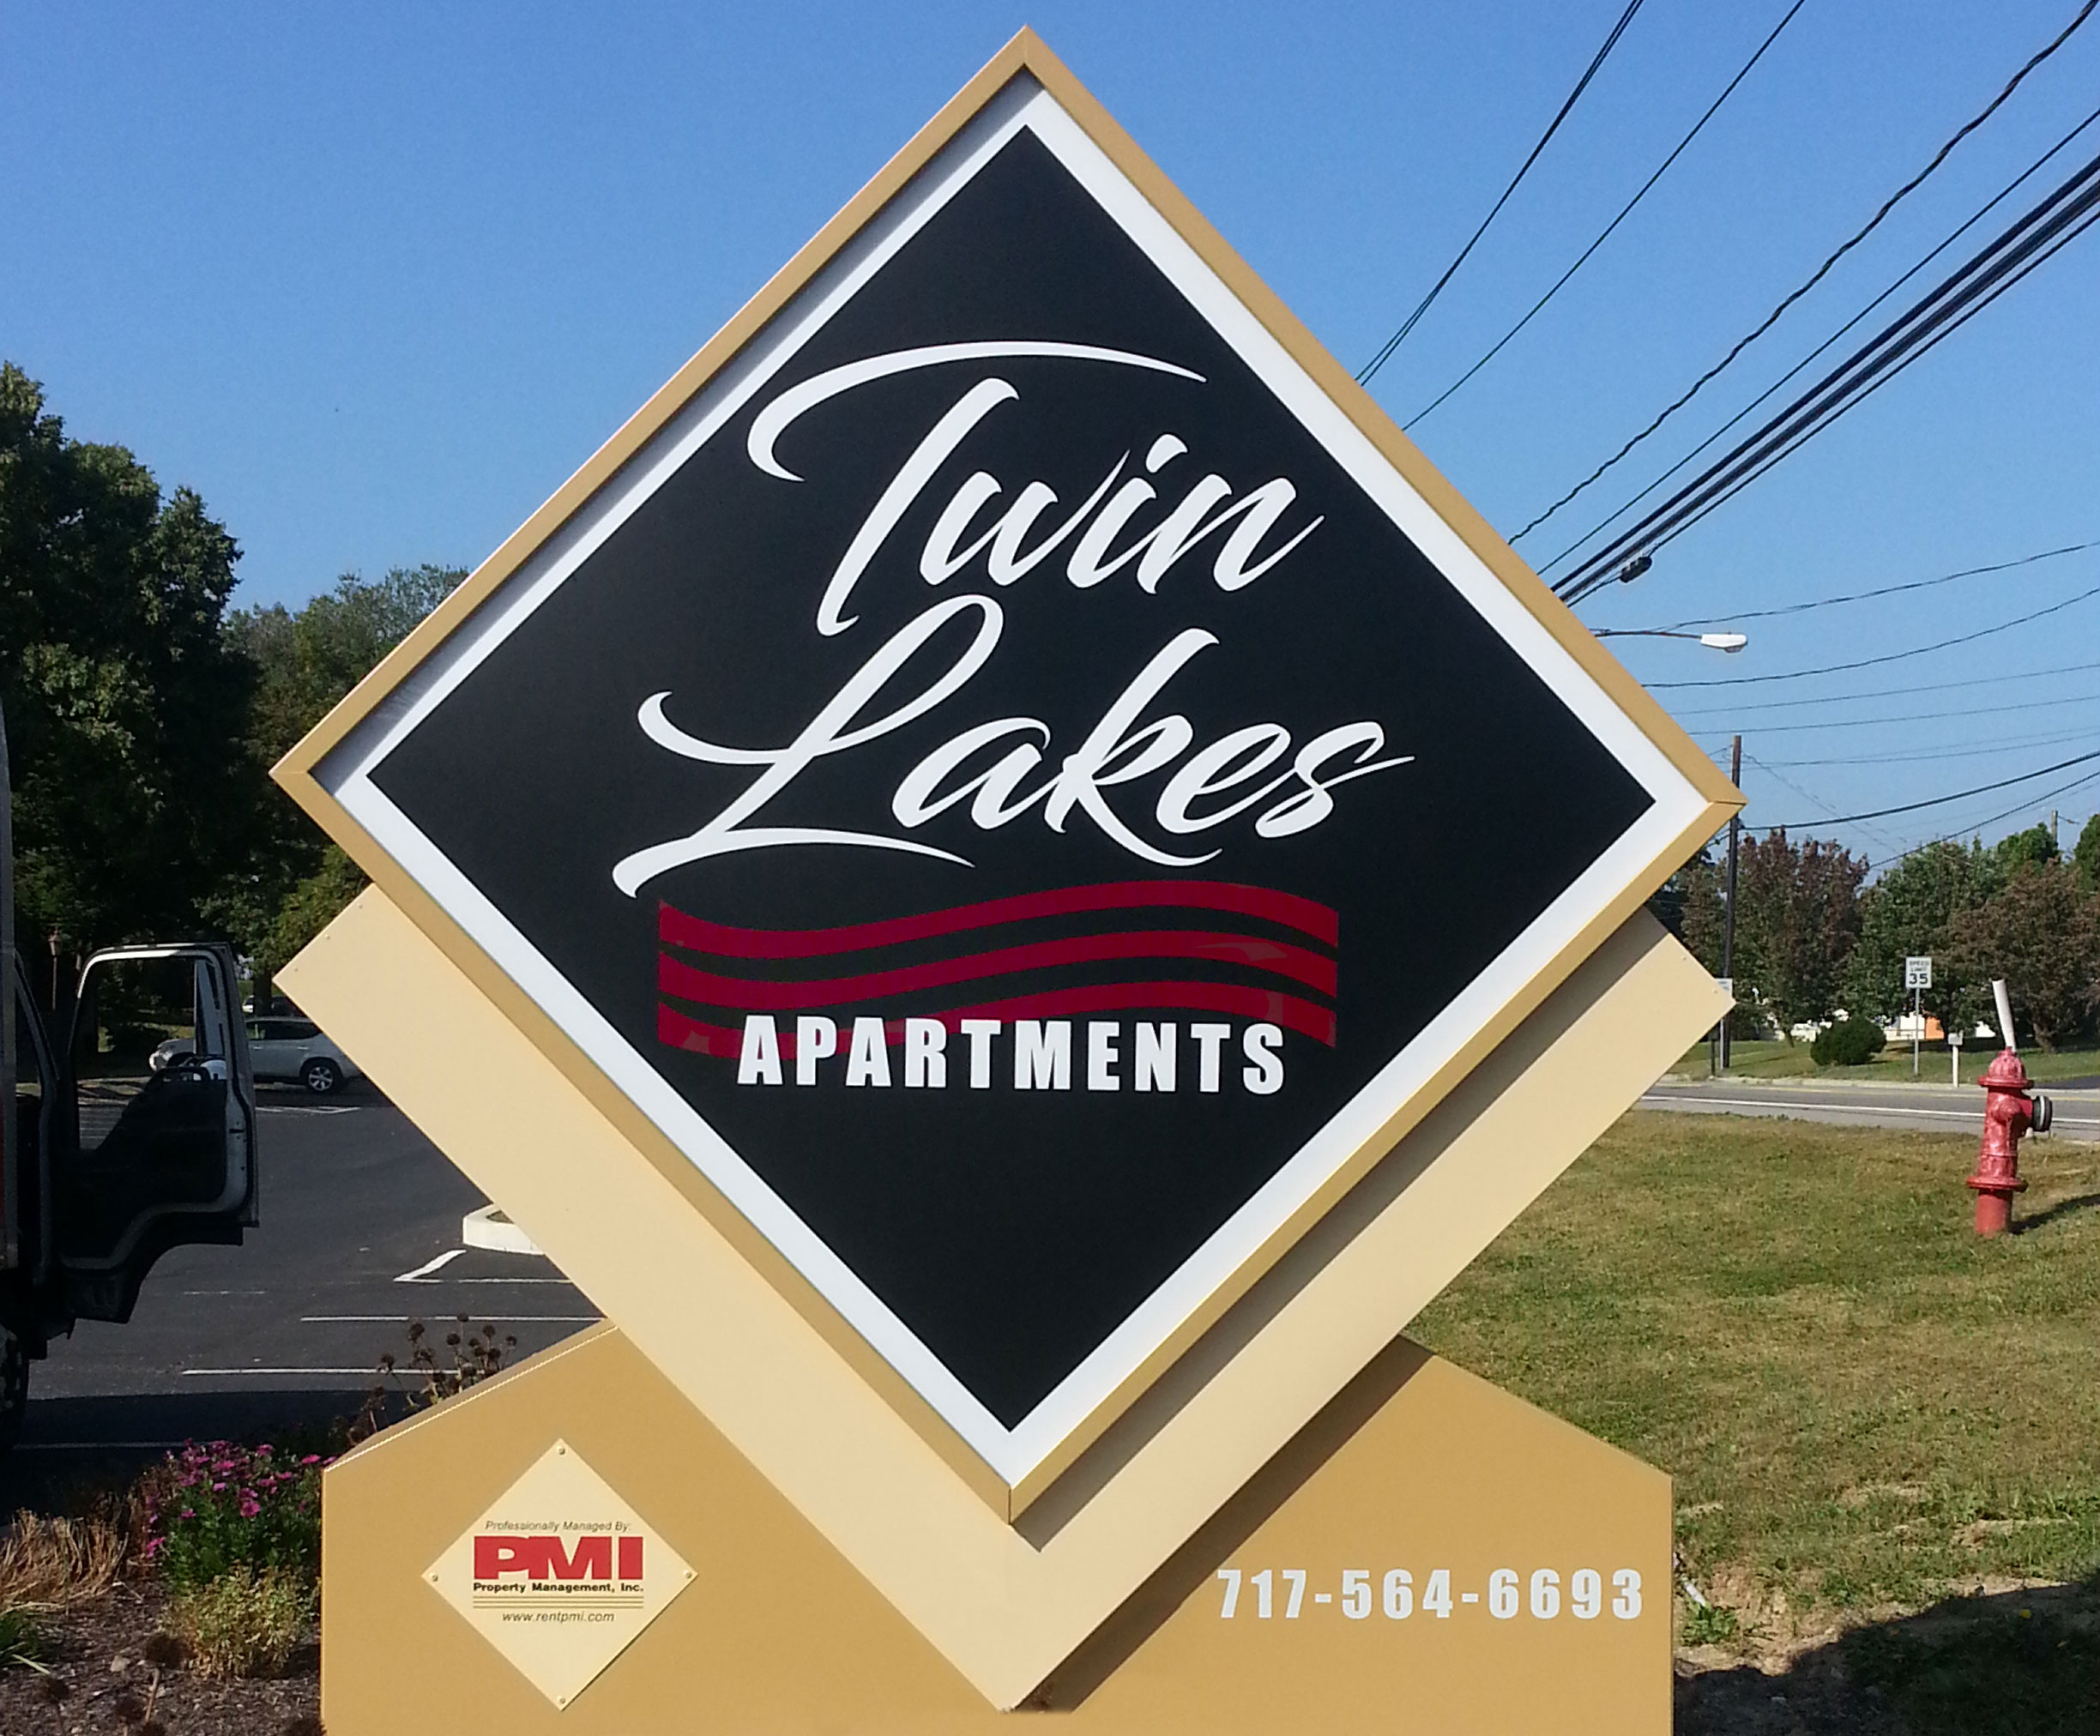 Harrisburg Apartments | Twin Lakes Apartment Sign | Property Management, Inc.